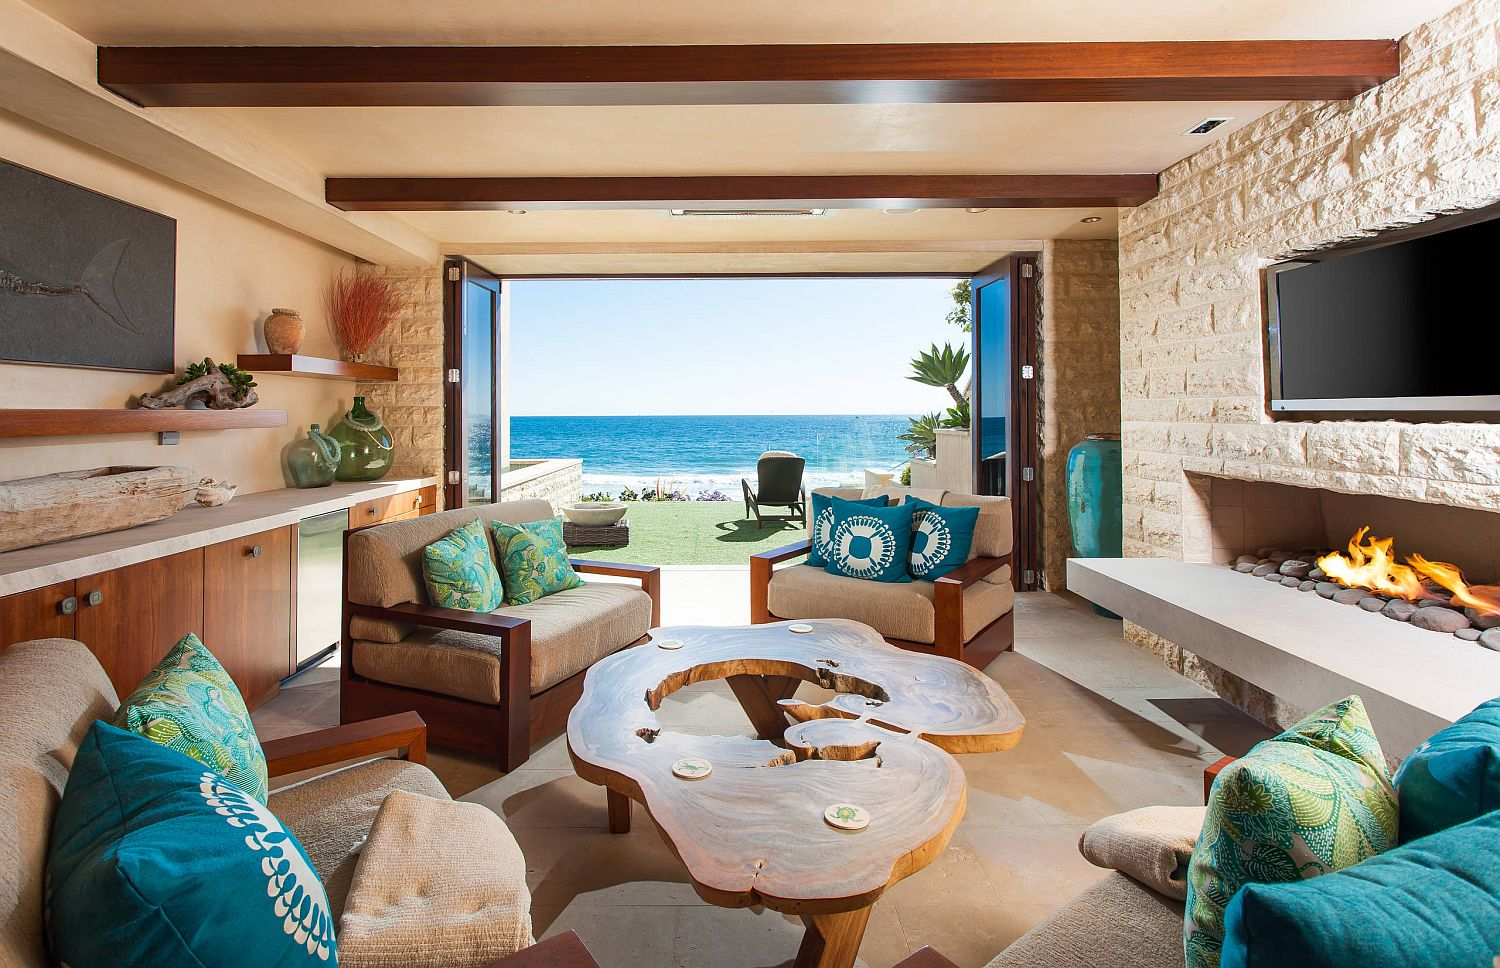 View of the ocean from the tropical style living room